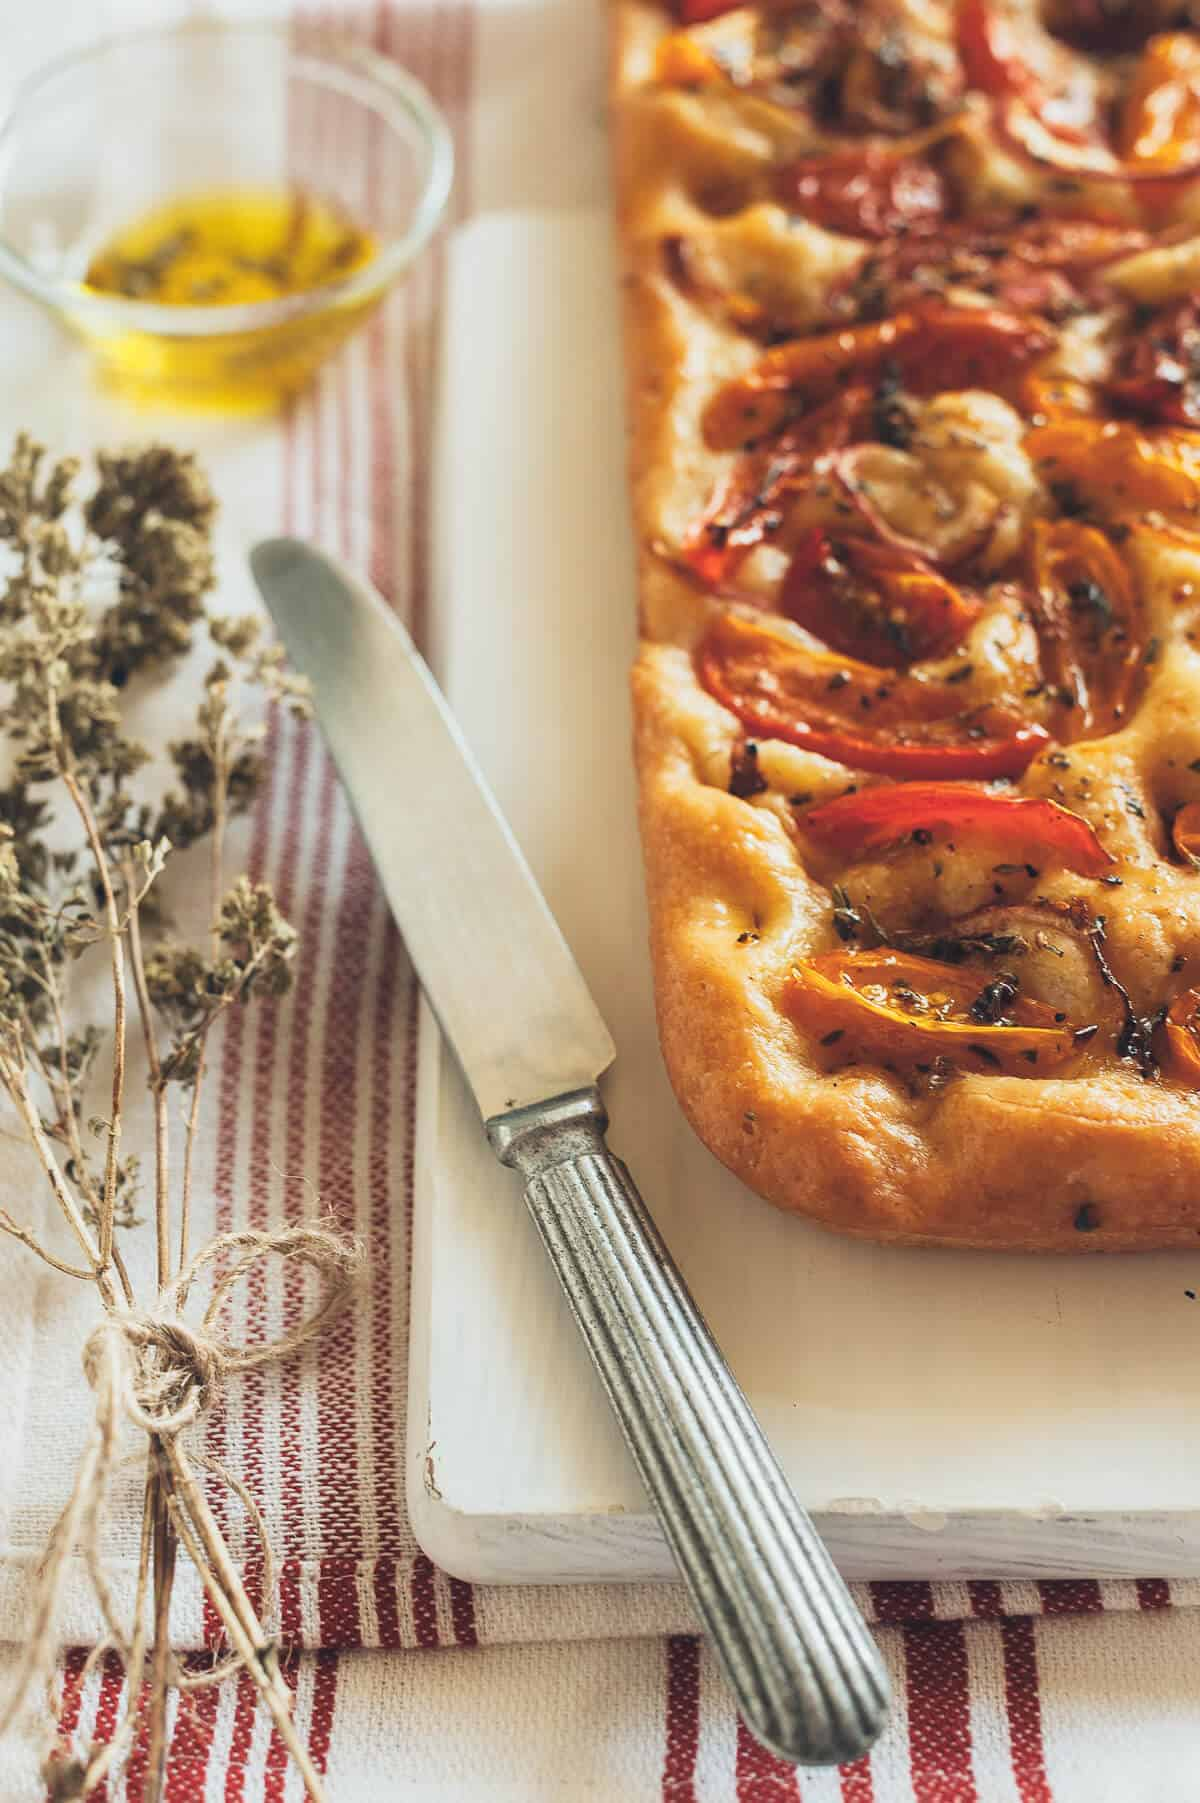 ladenia - a Greek flatbread topped with tomatoes, onions, olive oil and oregano presented on a white board with a knife next to it.